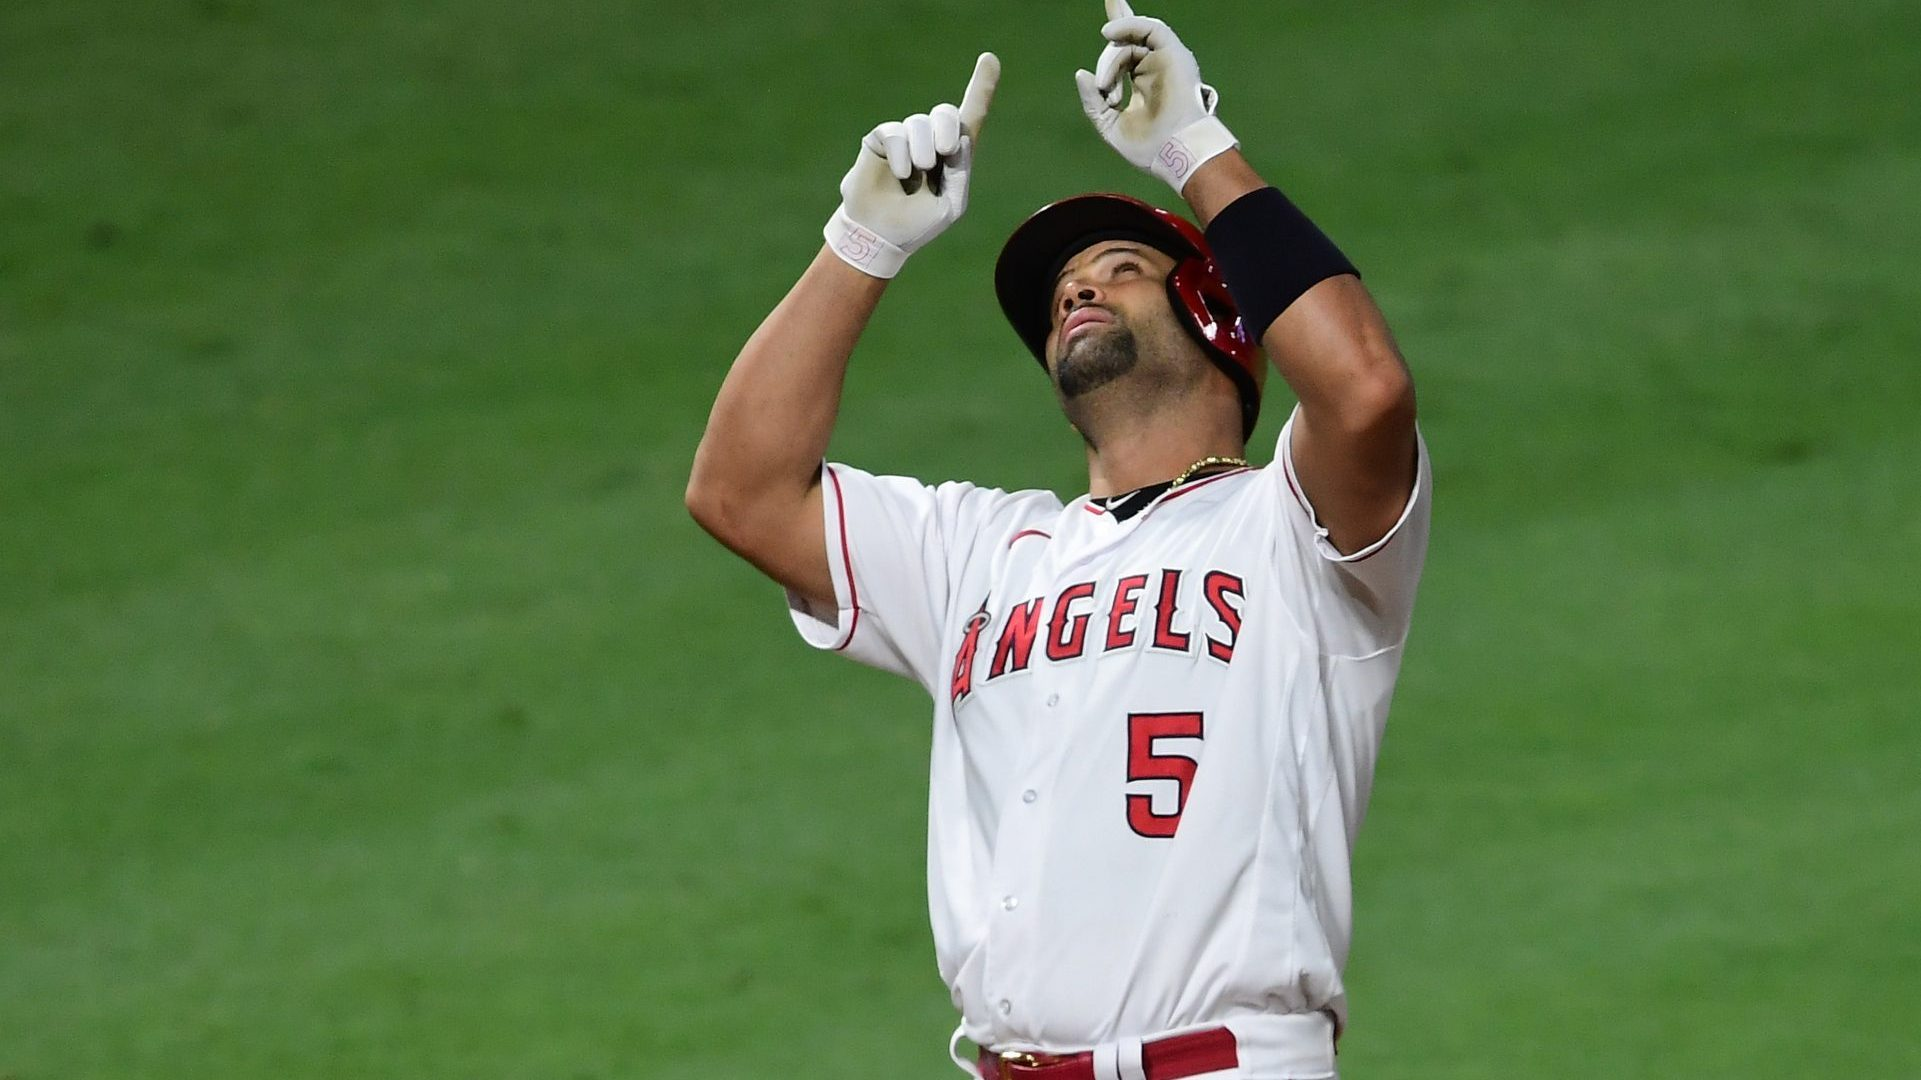 Pujols says he'll decide future after season with Angels